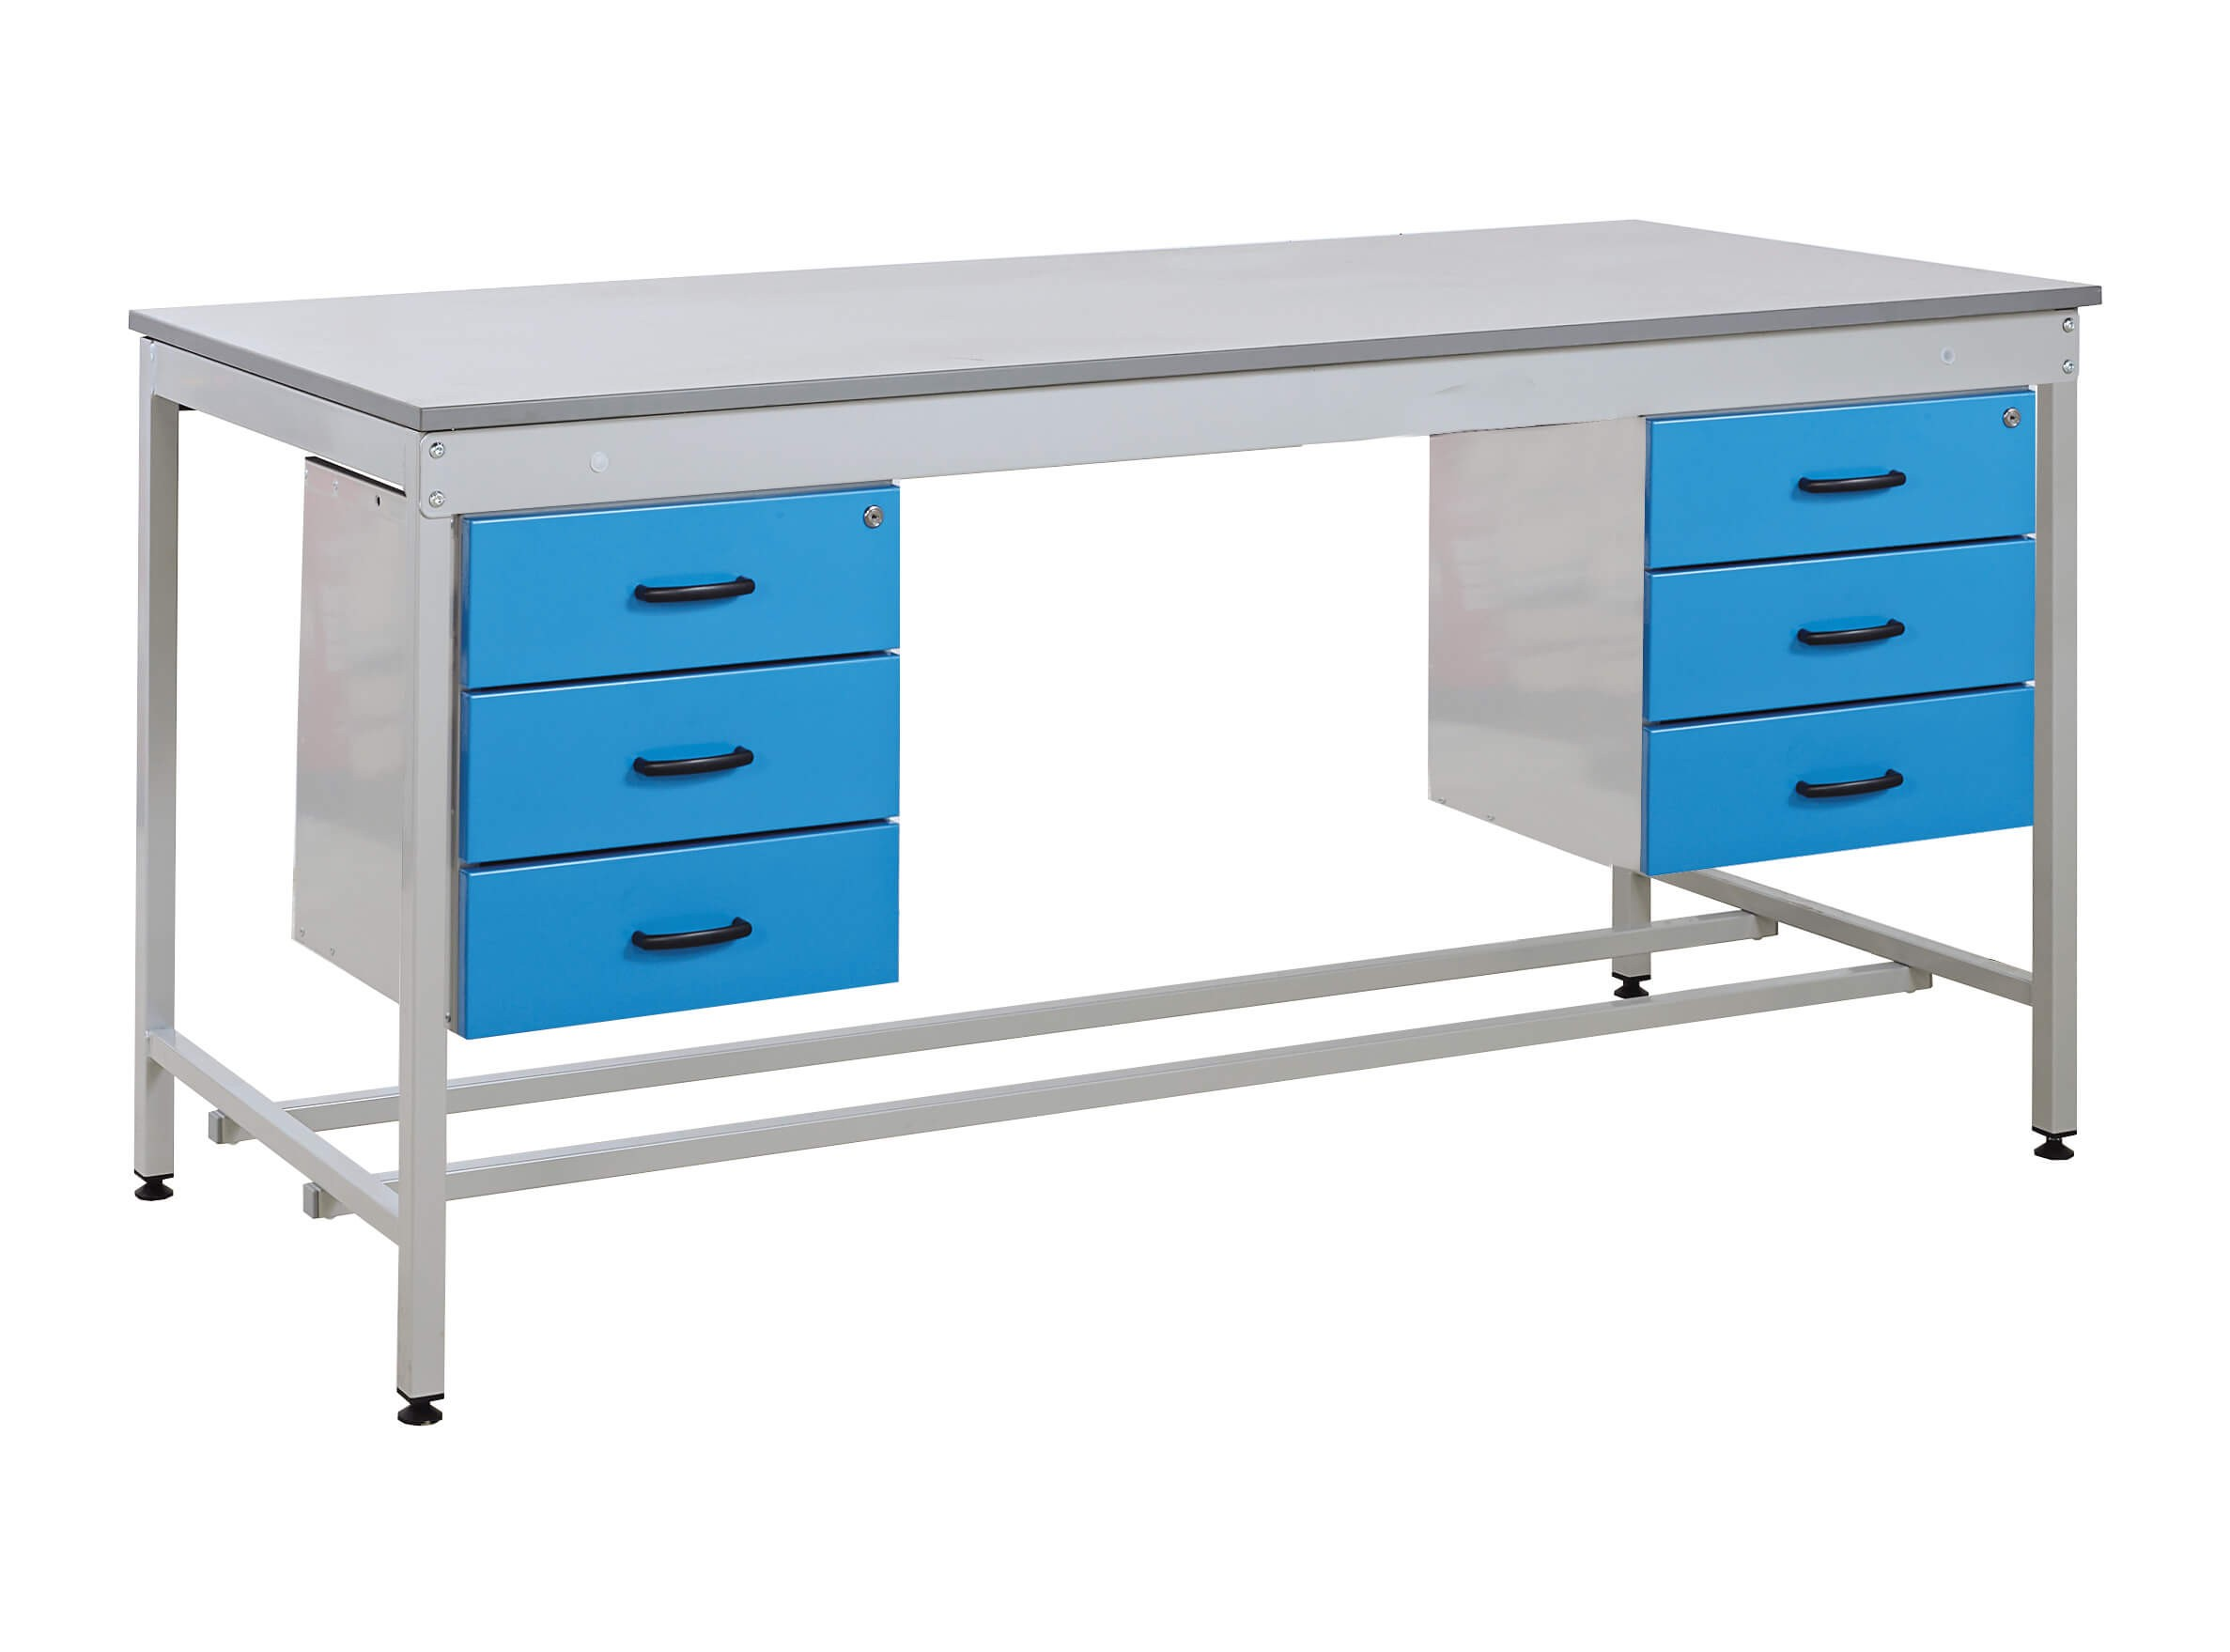 Taurus Utility Workbench - 2x Triple Draws